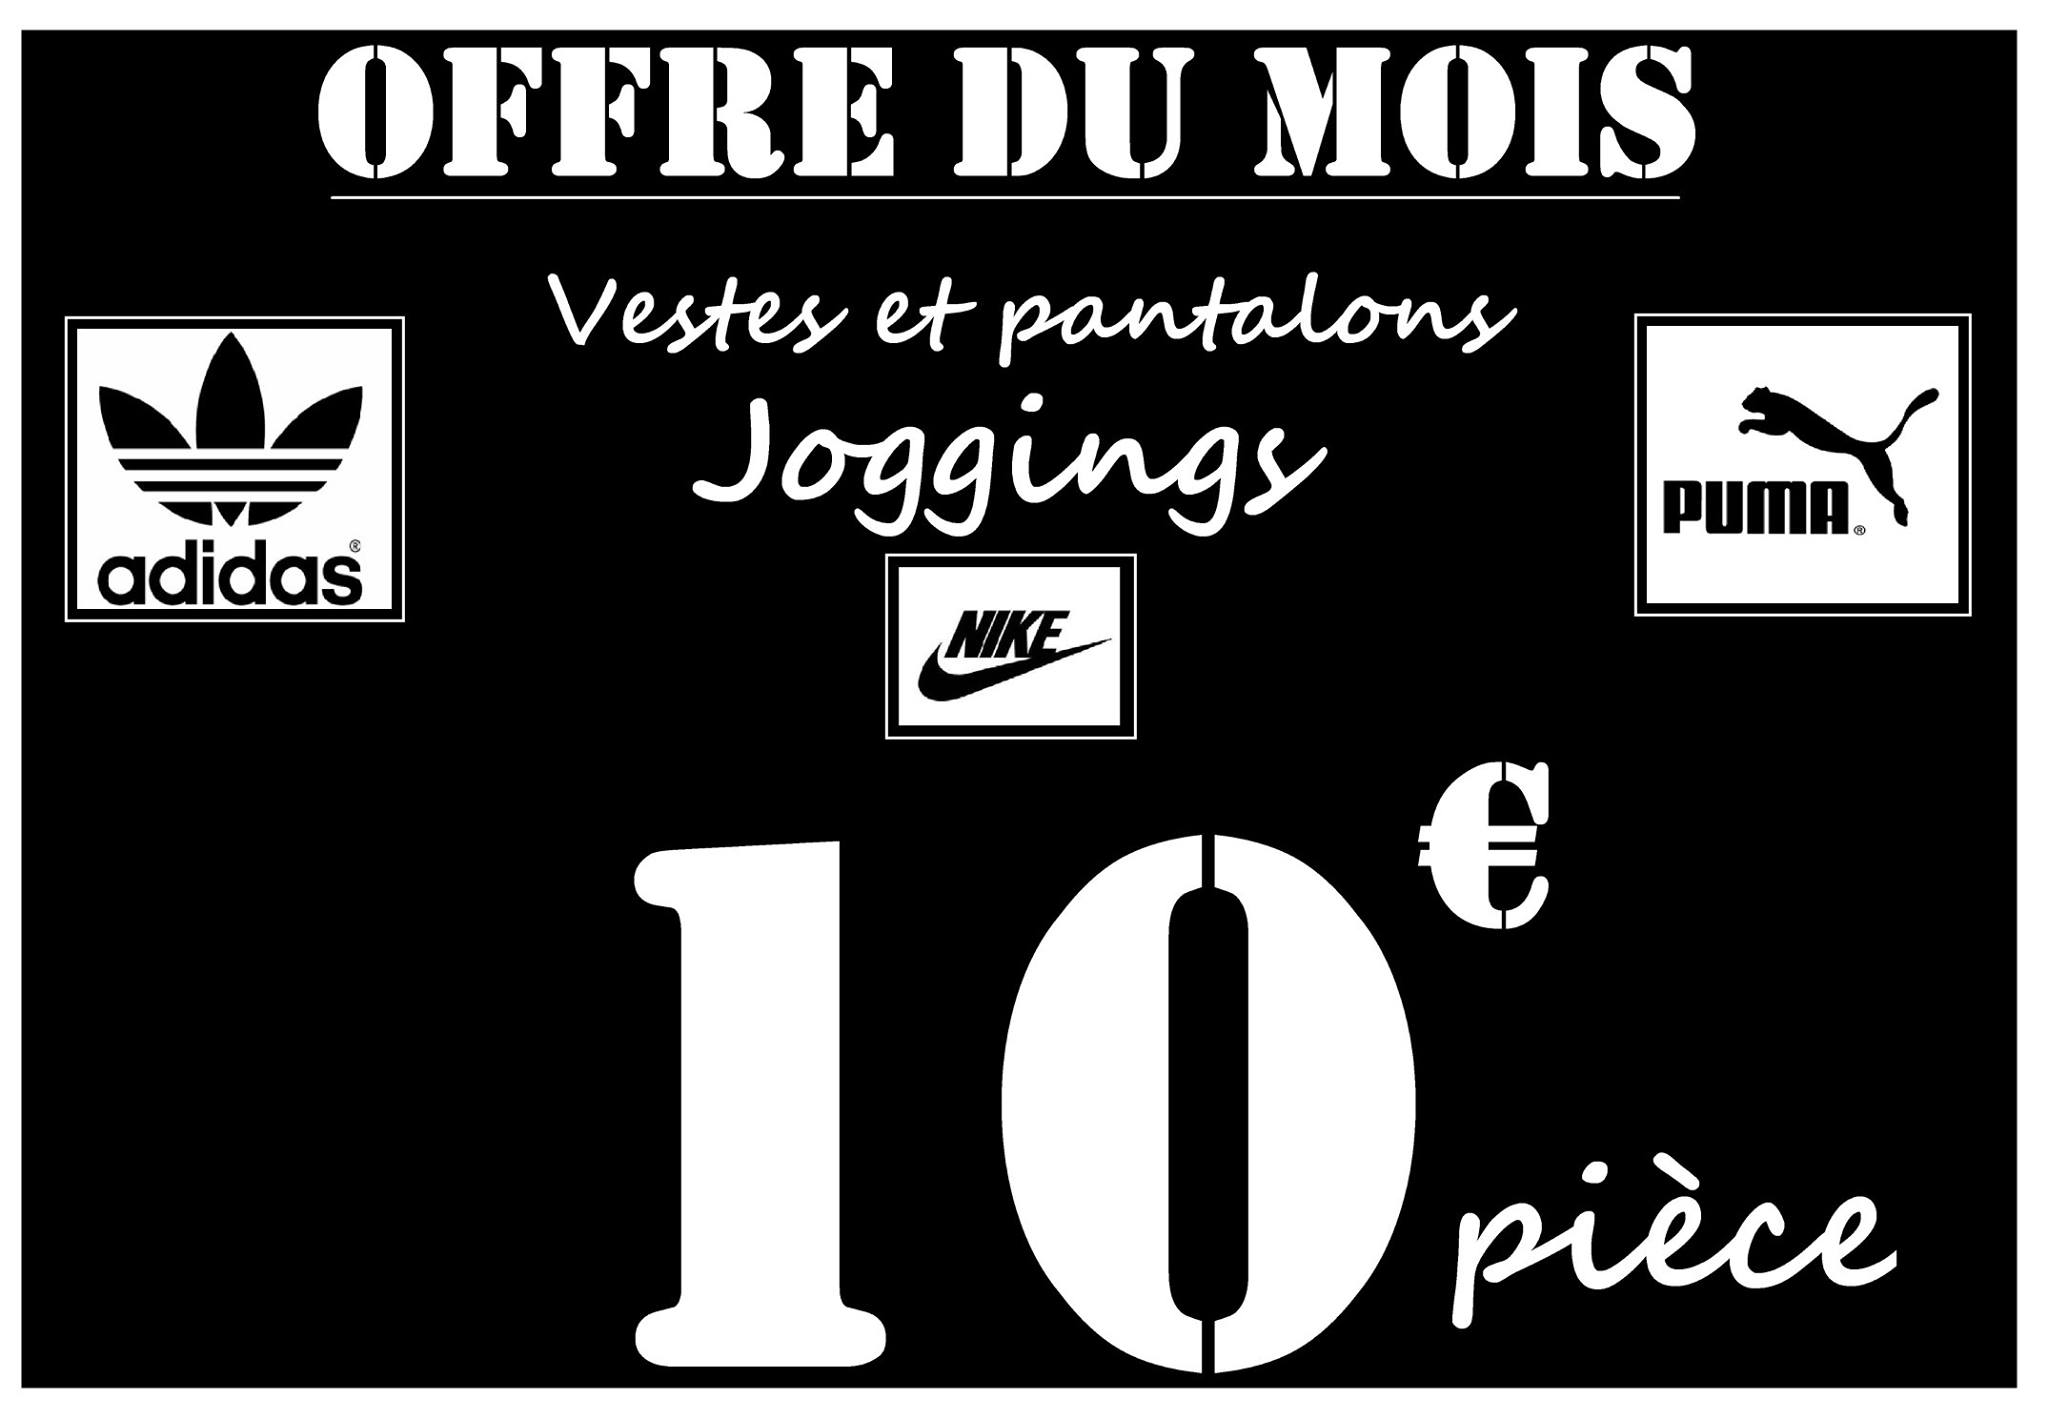 joggings Le Mans